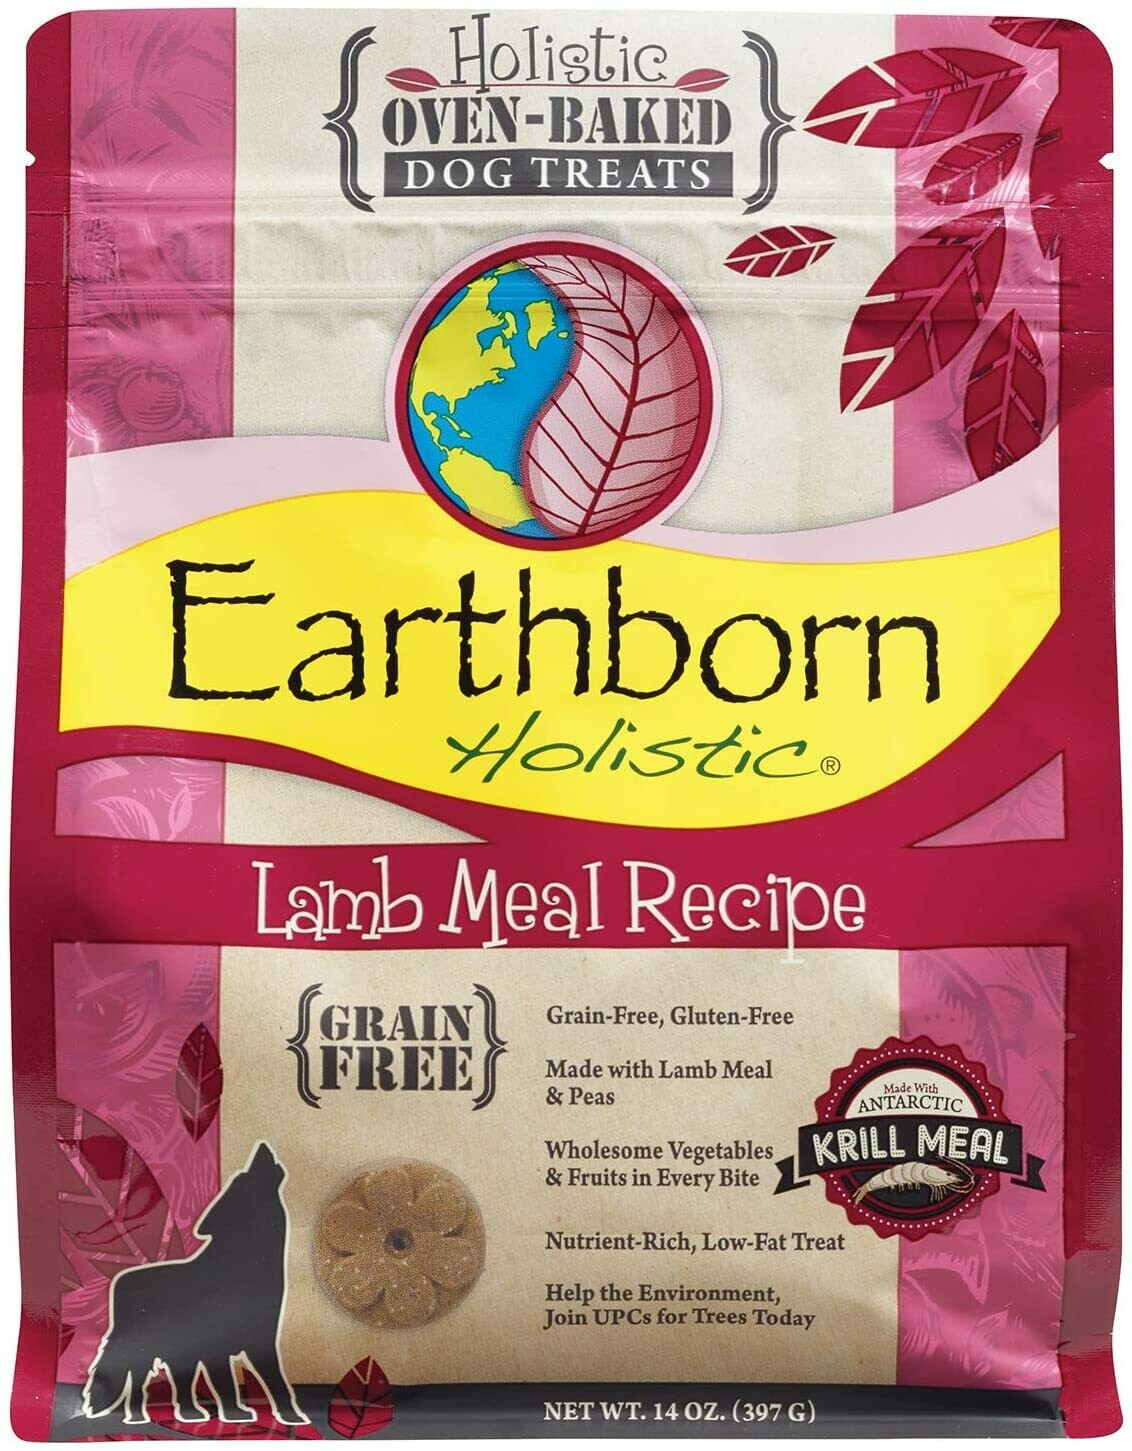 Earthborn Holistic Biscuit 14oz - Lamb